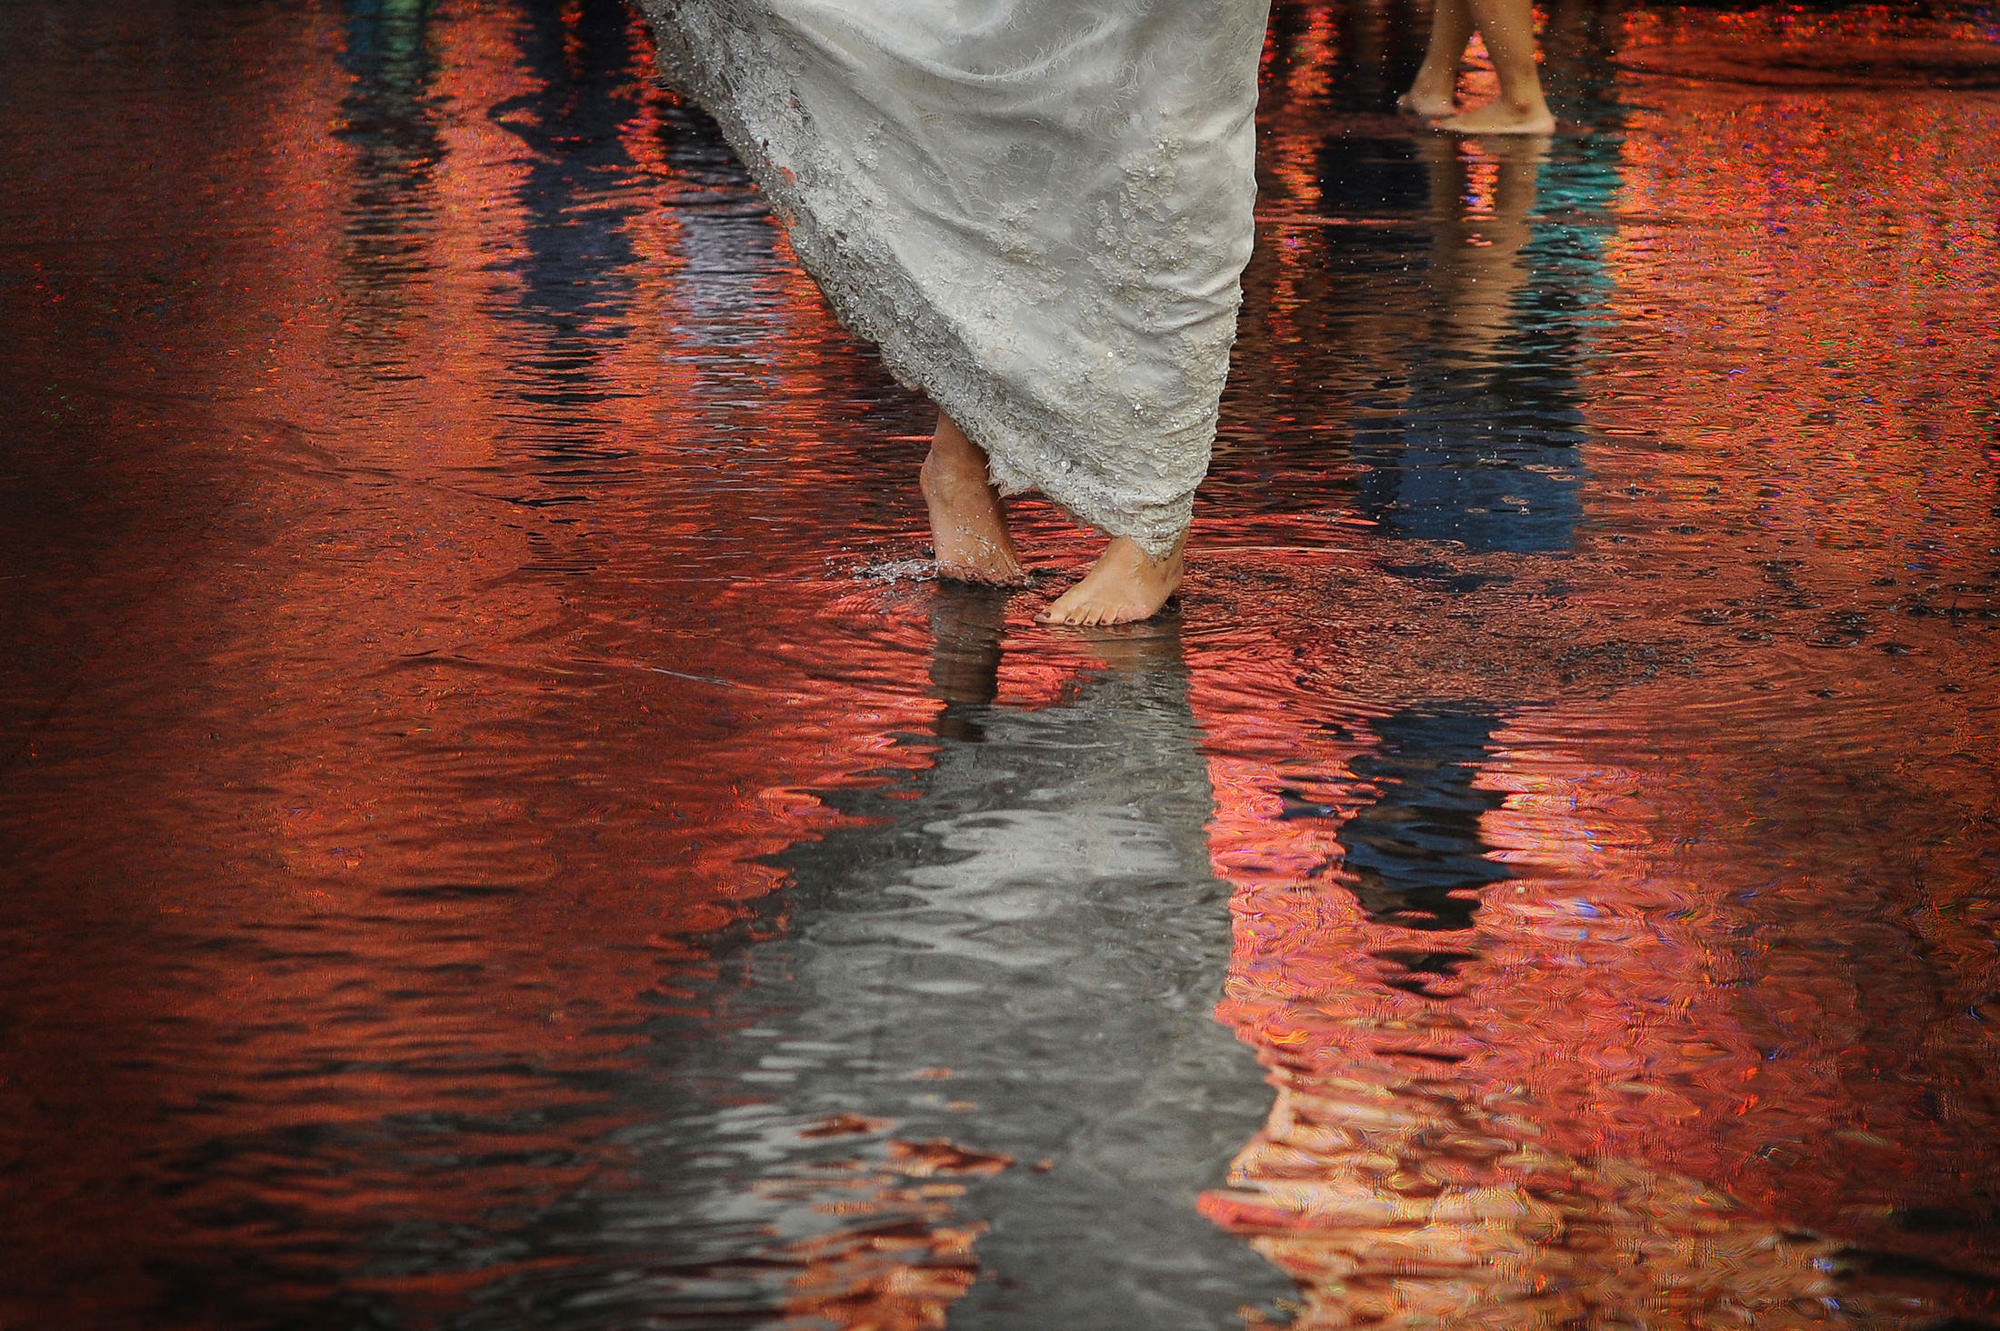 Bride in gown dancing barefoot in red reflection  - photo by Daniel Aguilar